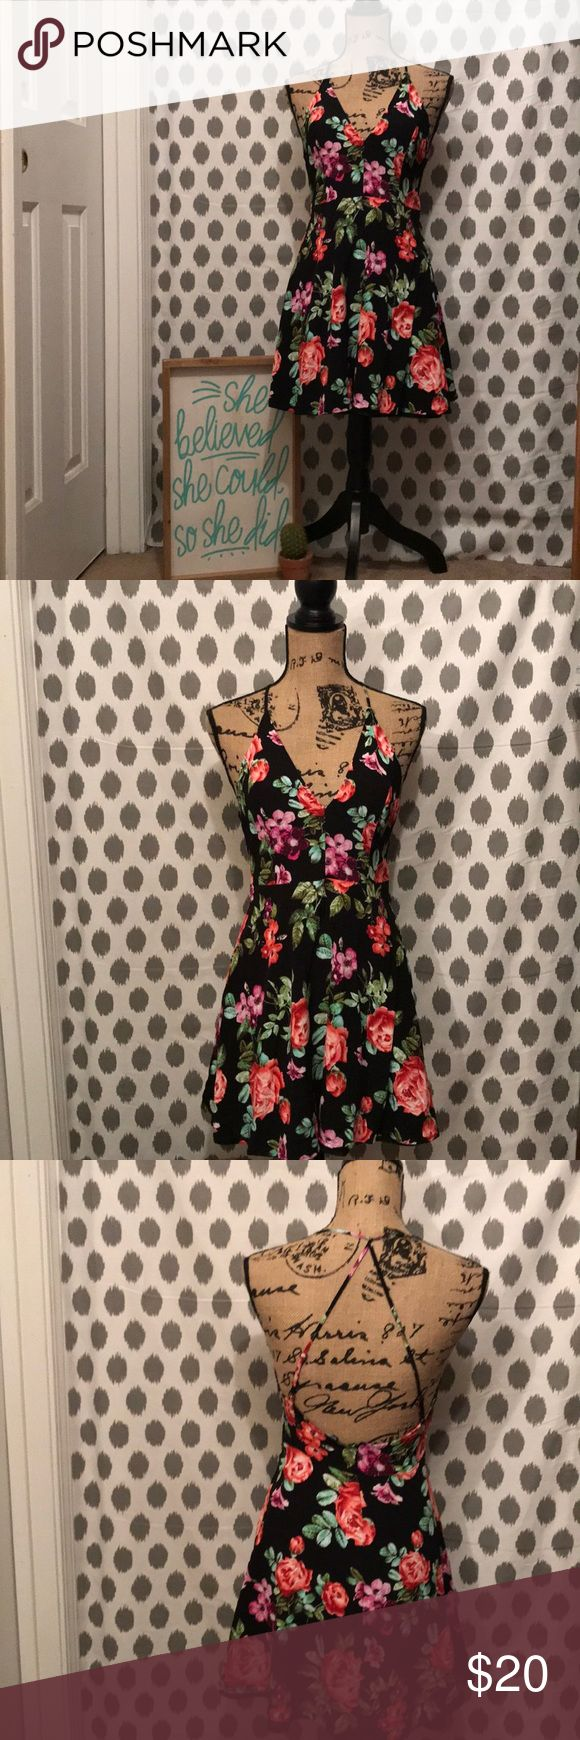 Forever 21 Spaghetti Strap Razor Back Mini Dress A Forever 21 colorful floral (rose, pansy & violet) print spaghetti strap/razor back mini shift dress.....just in time for all the Spring & Summer bar-b-ques, dates & girl's night out get together's. Forever 21 Dresses Mini